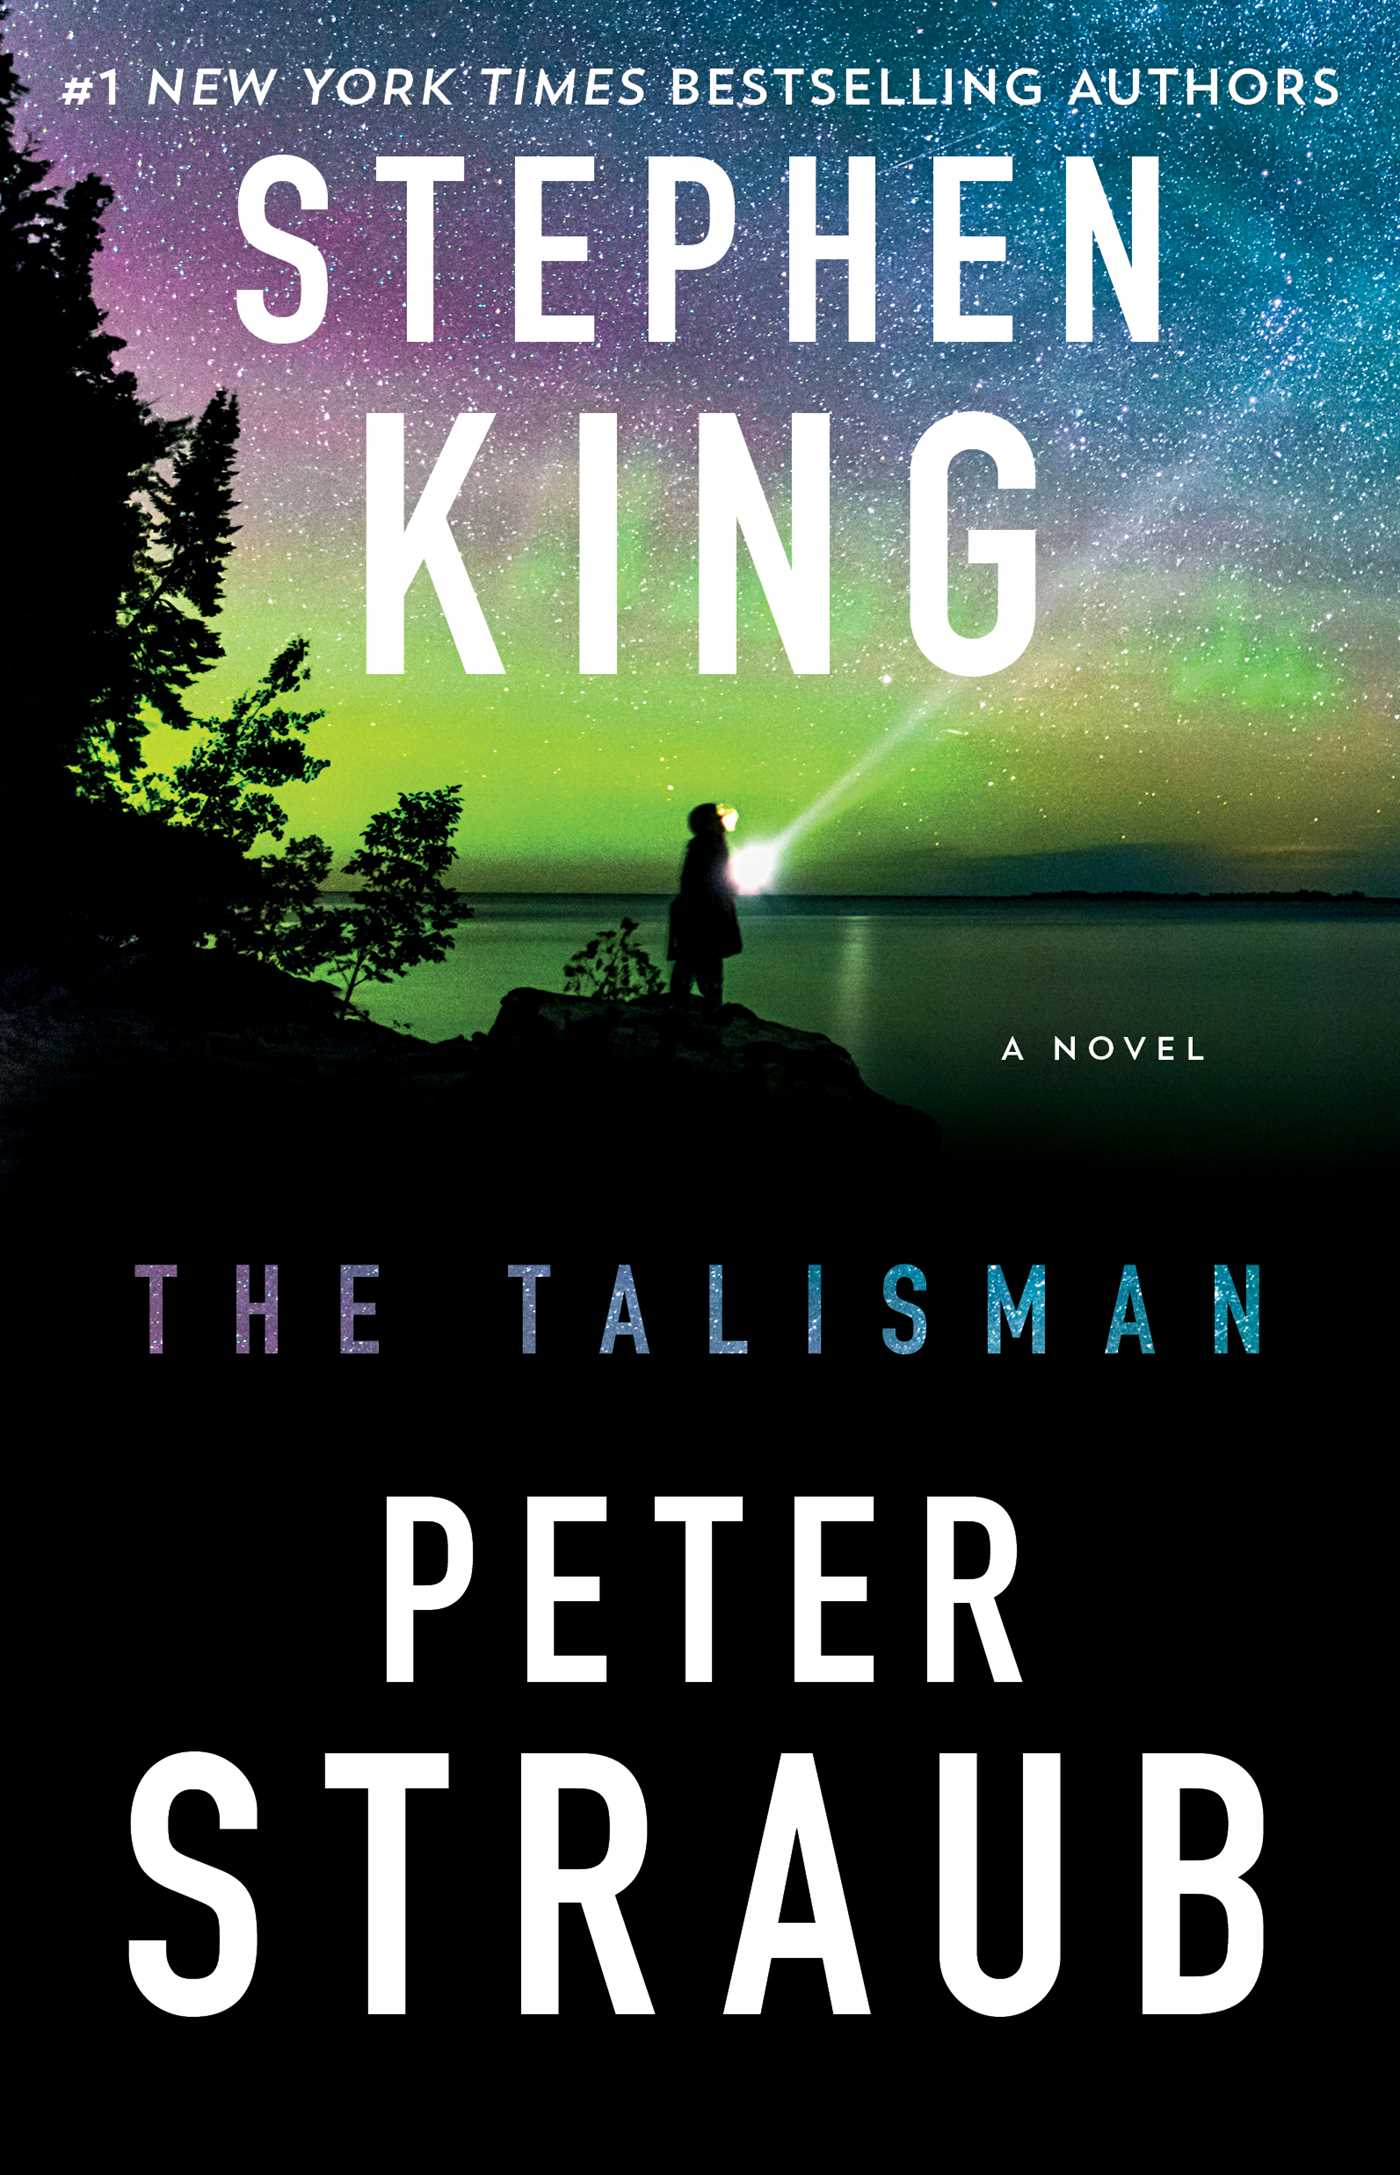 The Talisman | Book by Stephen King, Peter Straub | Official